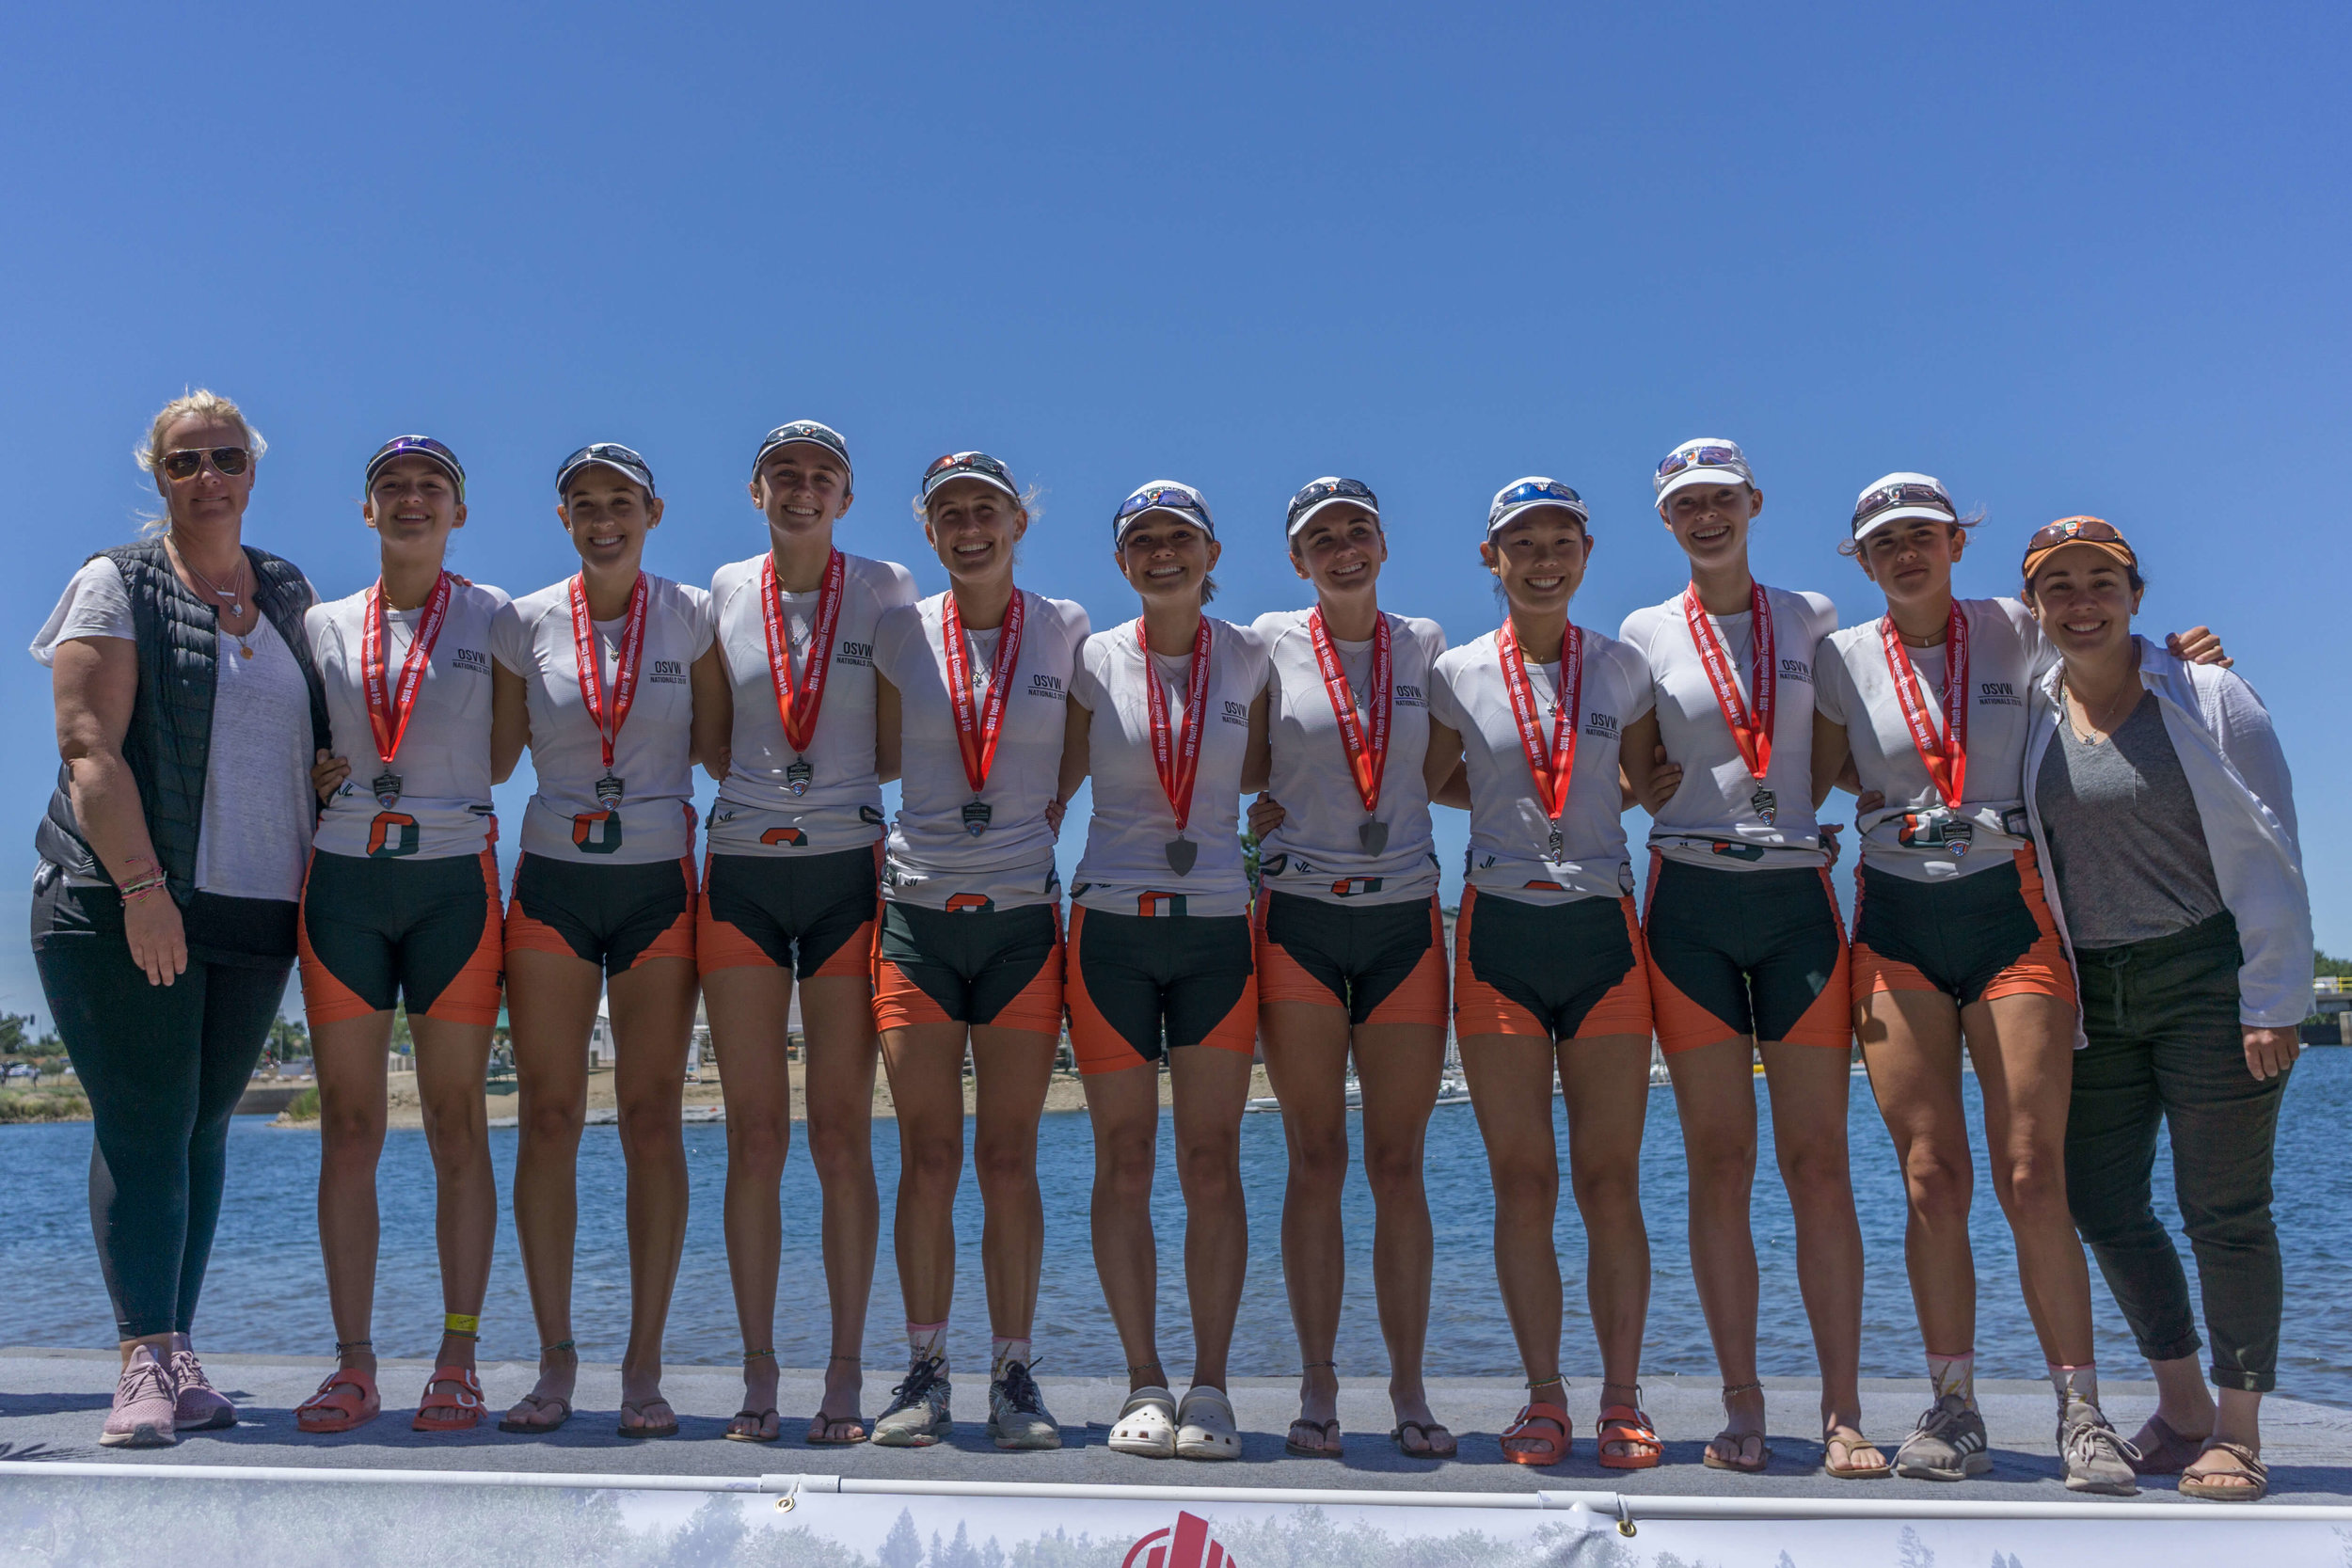 Oakland Strokes Varsity Women Ltwt 8+ 2018 US Nationals Silver  (1).jpg